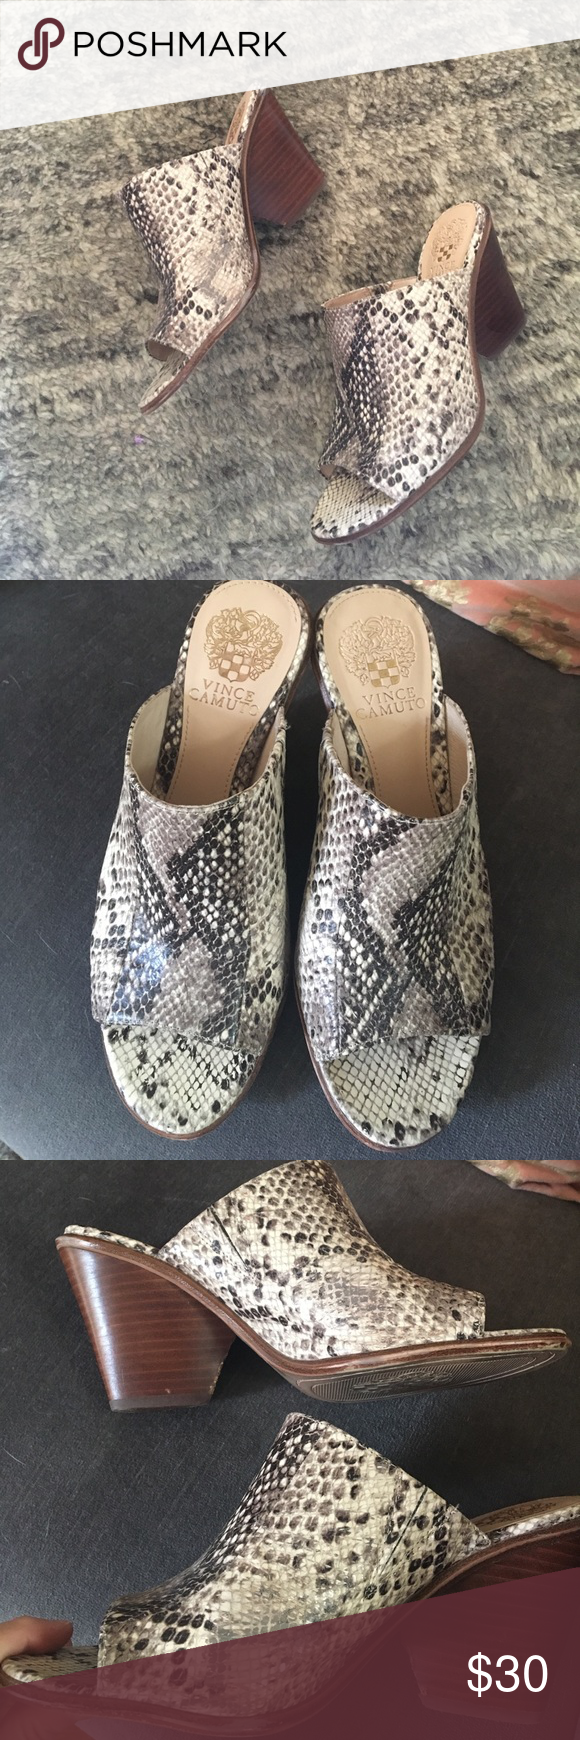 Vince camuto, Vince camuto shoes, Mules